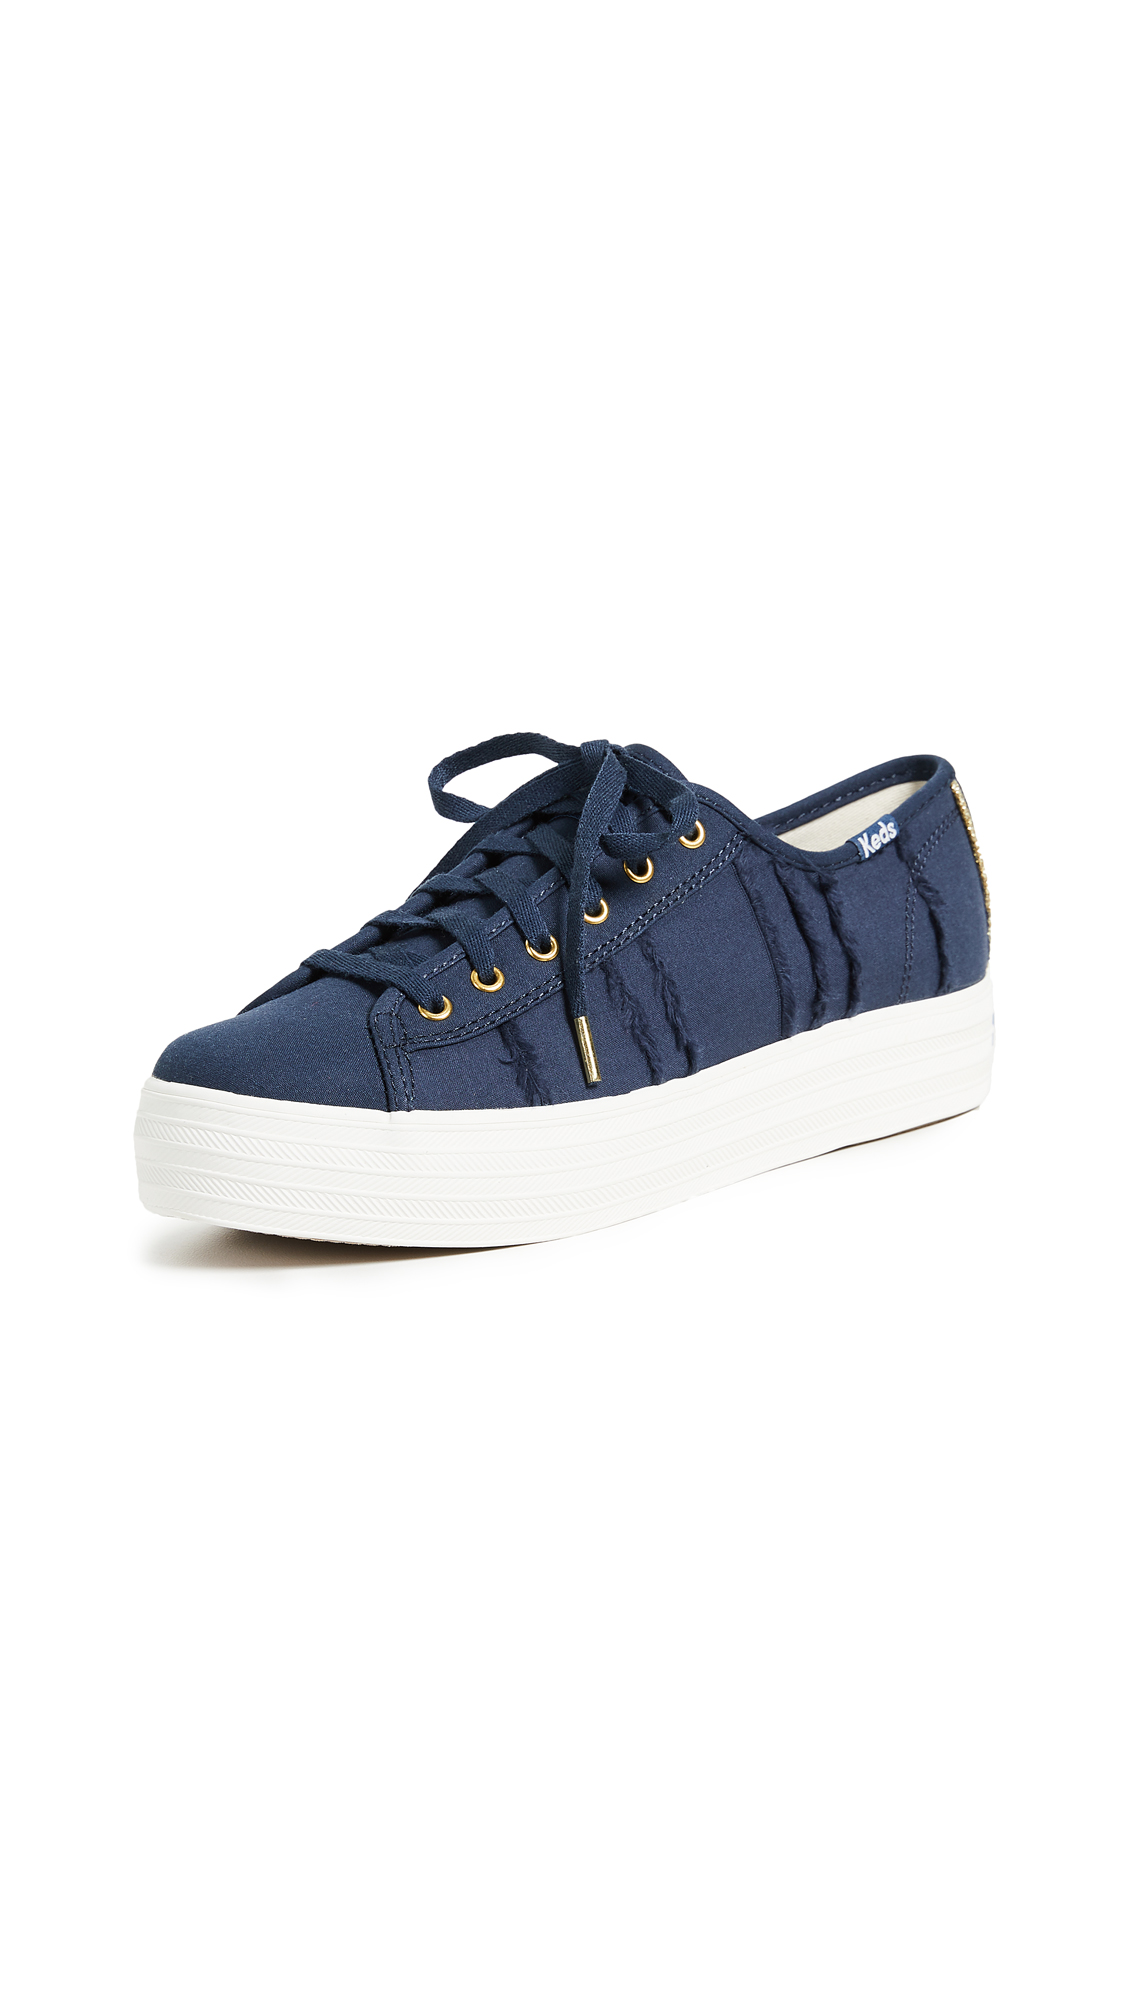 Keds Triple Kick Eyelash Lace Up Sneakers - Indigo